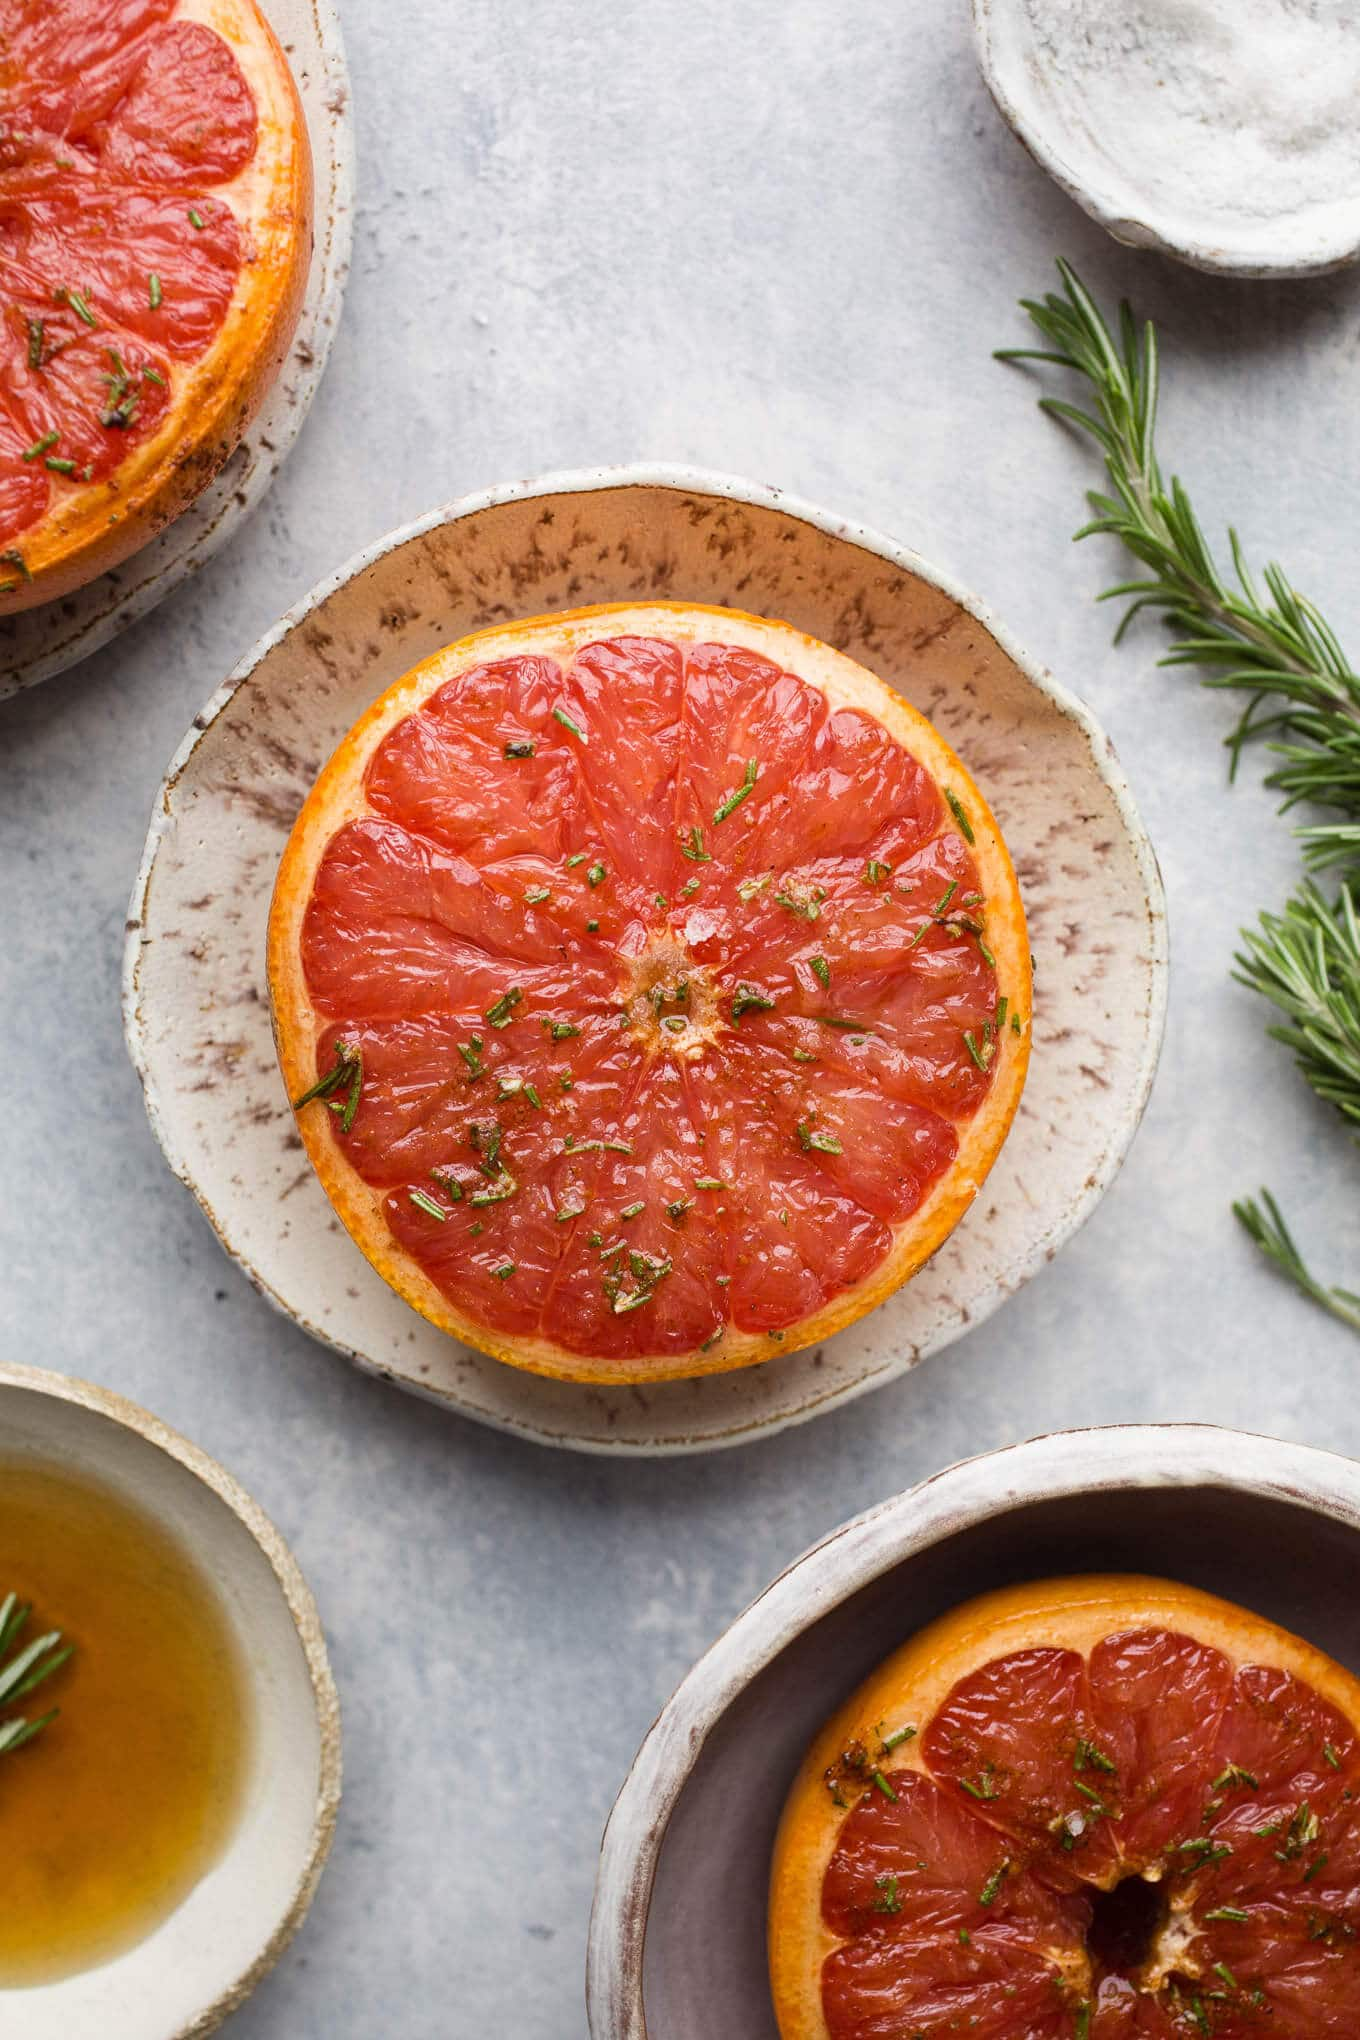 Broiled grapefruit with maple syrup and rosemary